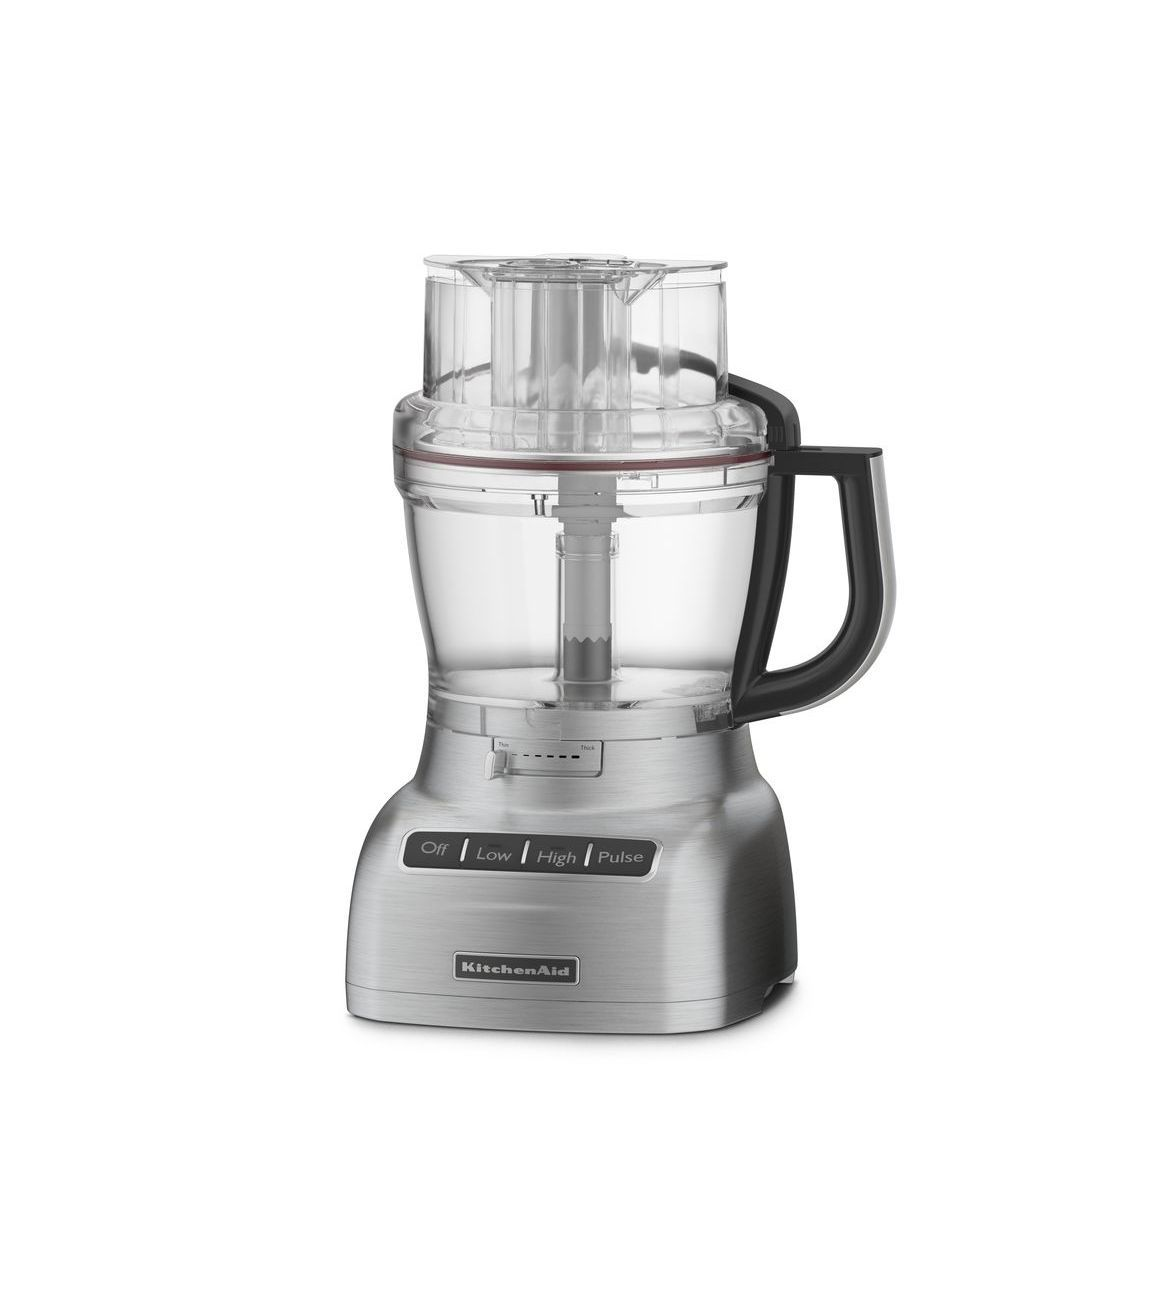 Kitchenaid 13cup food processor with exactslice system